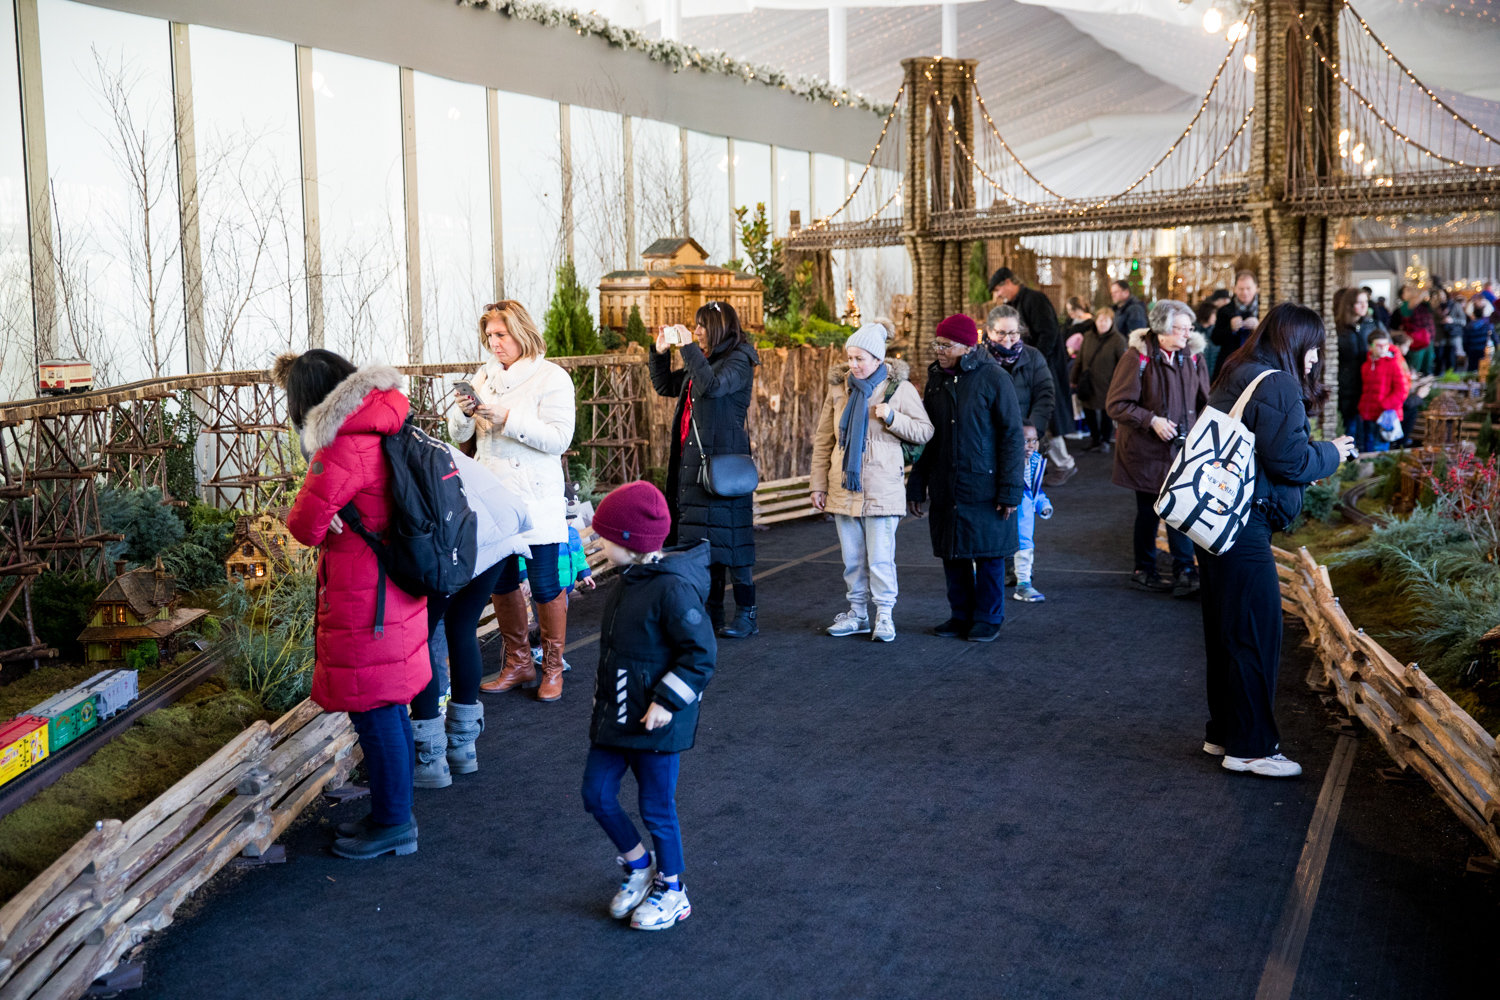 Visitors take in the Holiday Train Show at the New York Botanical Garden.